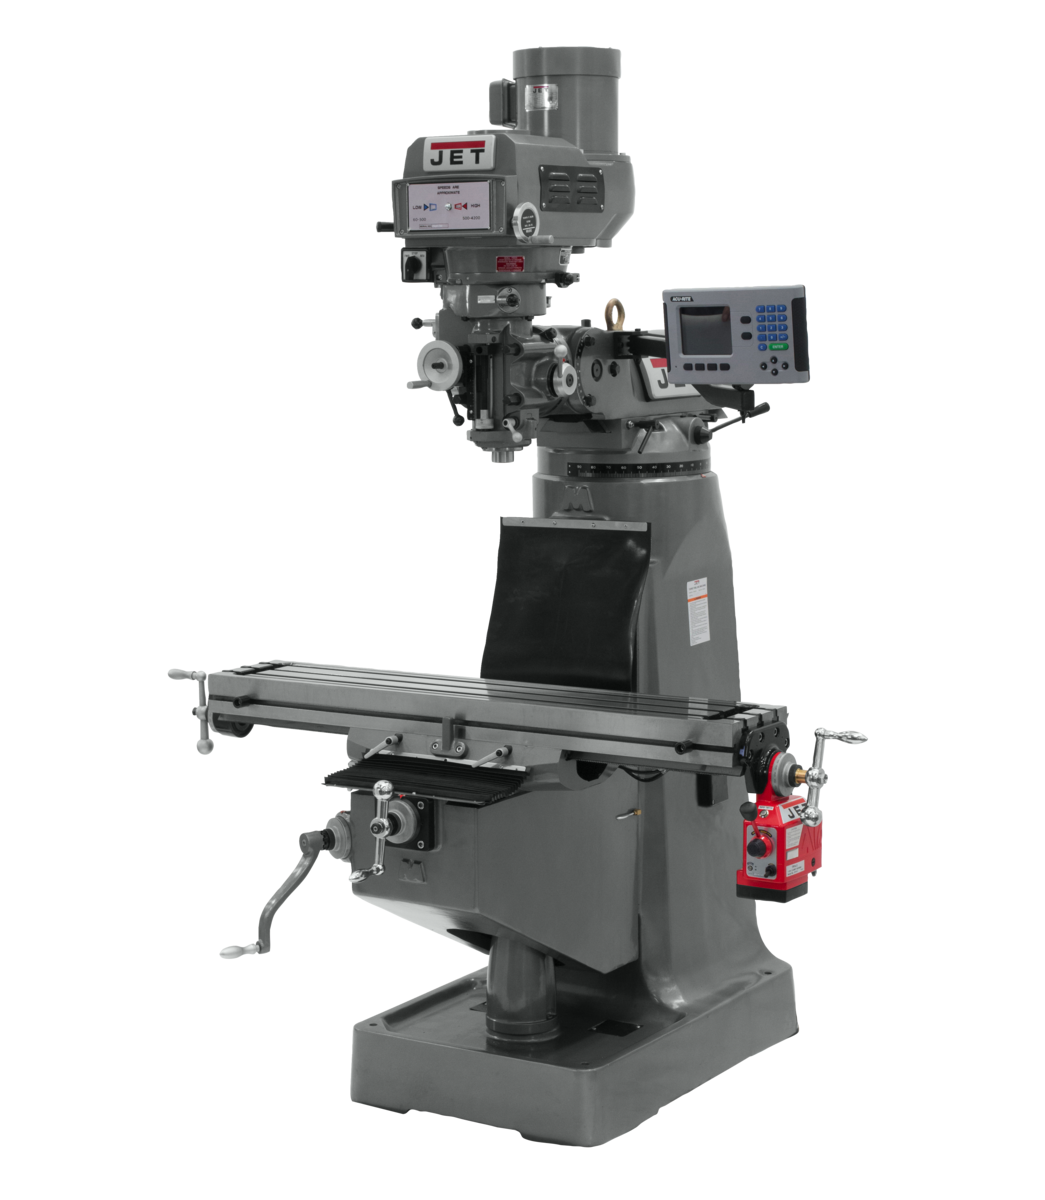 JTM-4VS-1 Mill With ACU-RITE 203 DRO With X-Axis Powerfeed